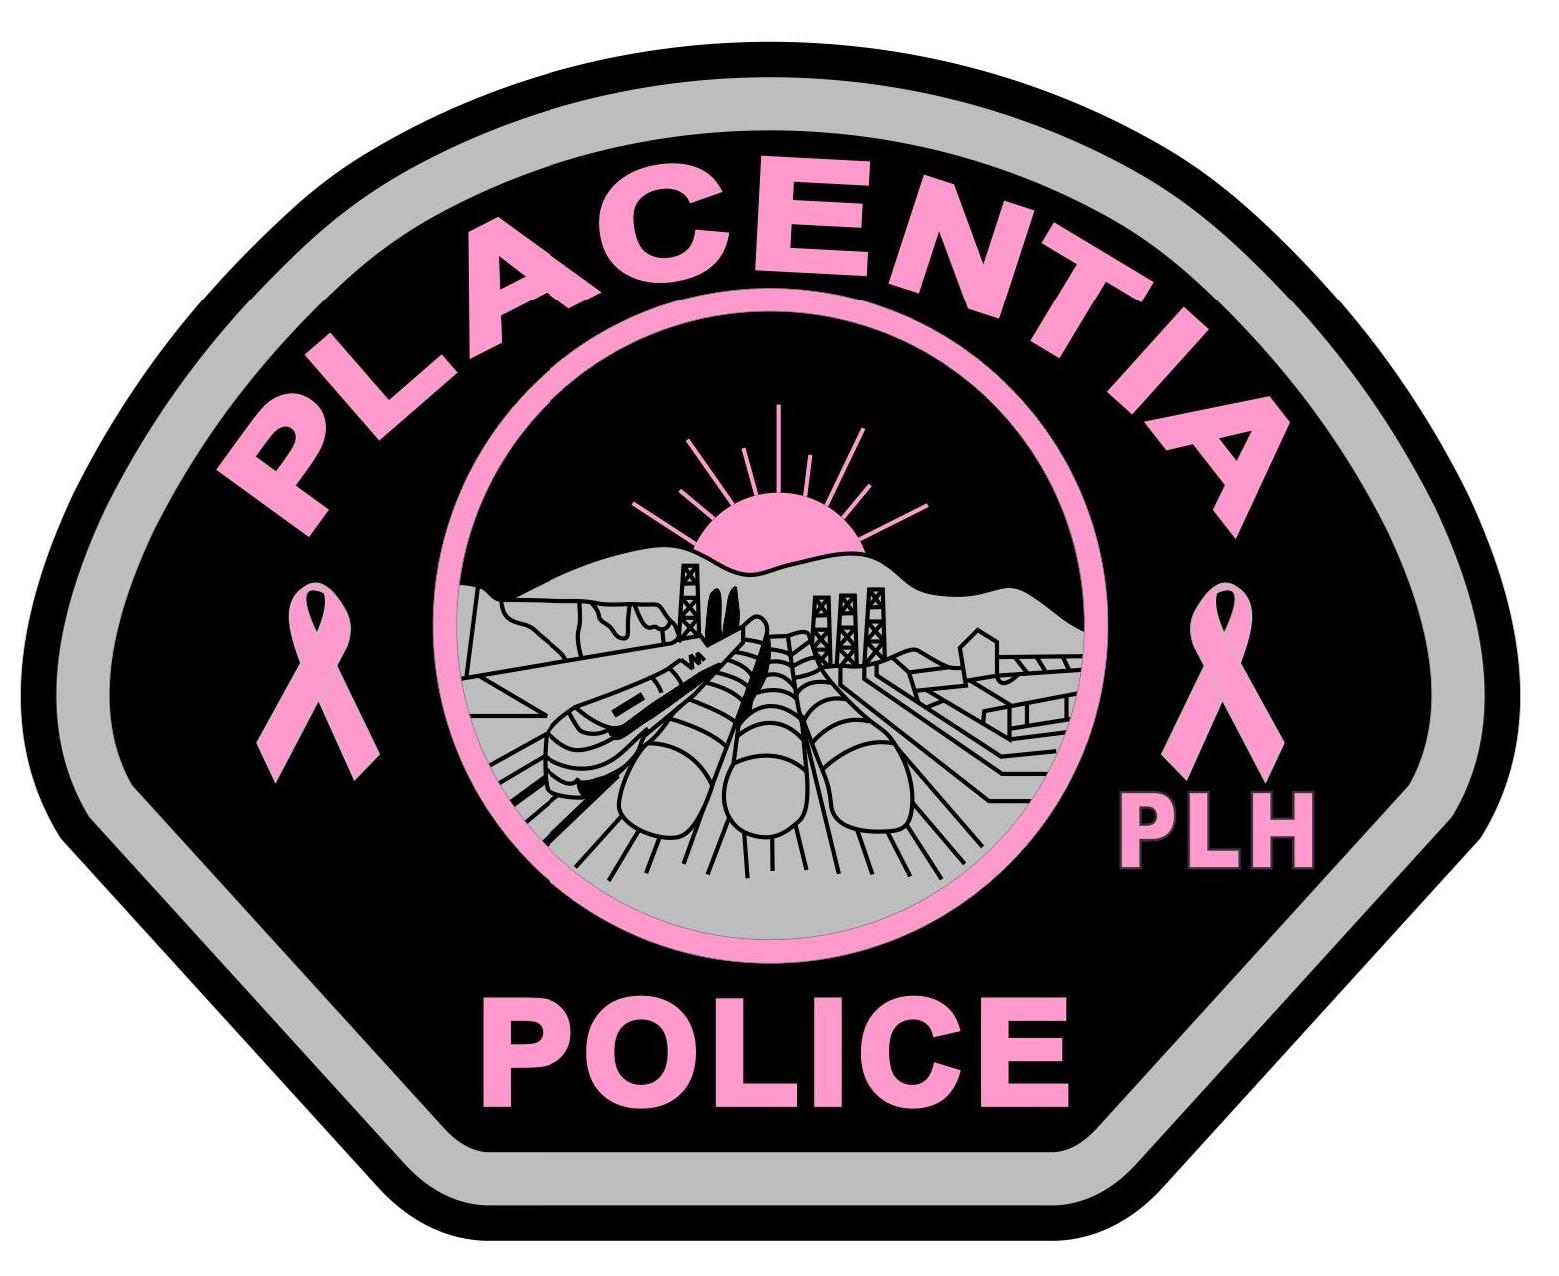 Placentia PD Pink Patch-page-001.jpg